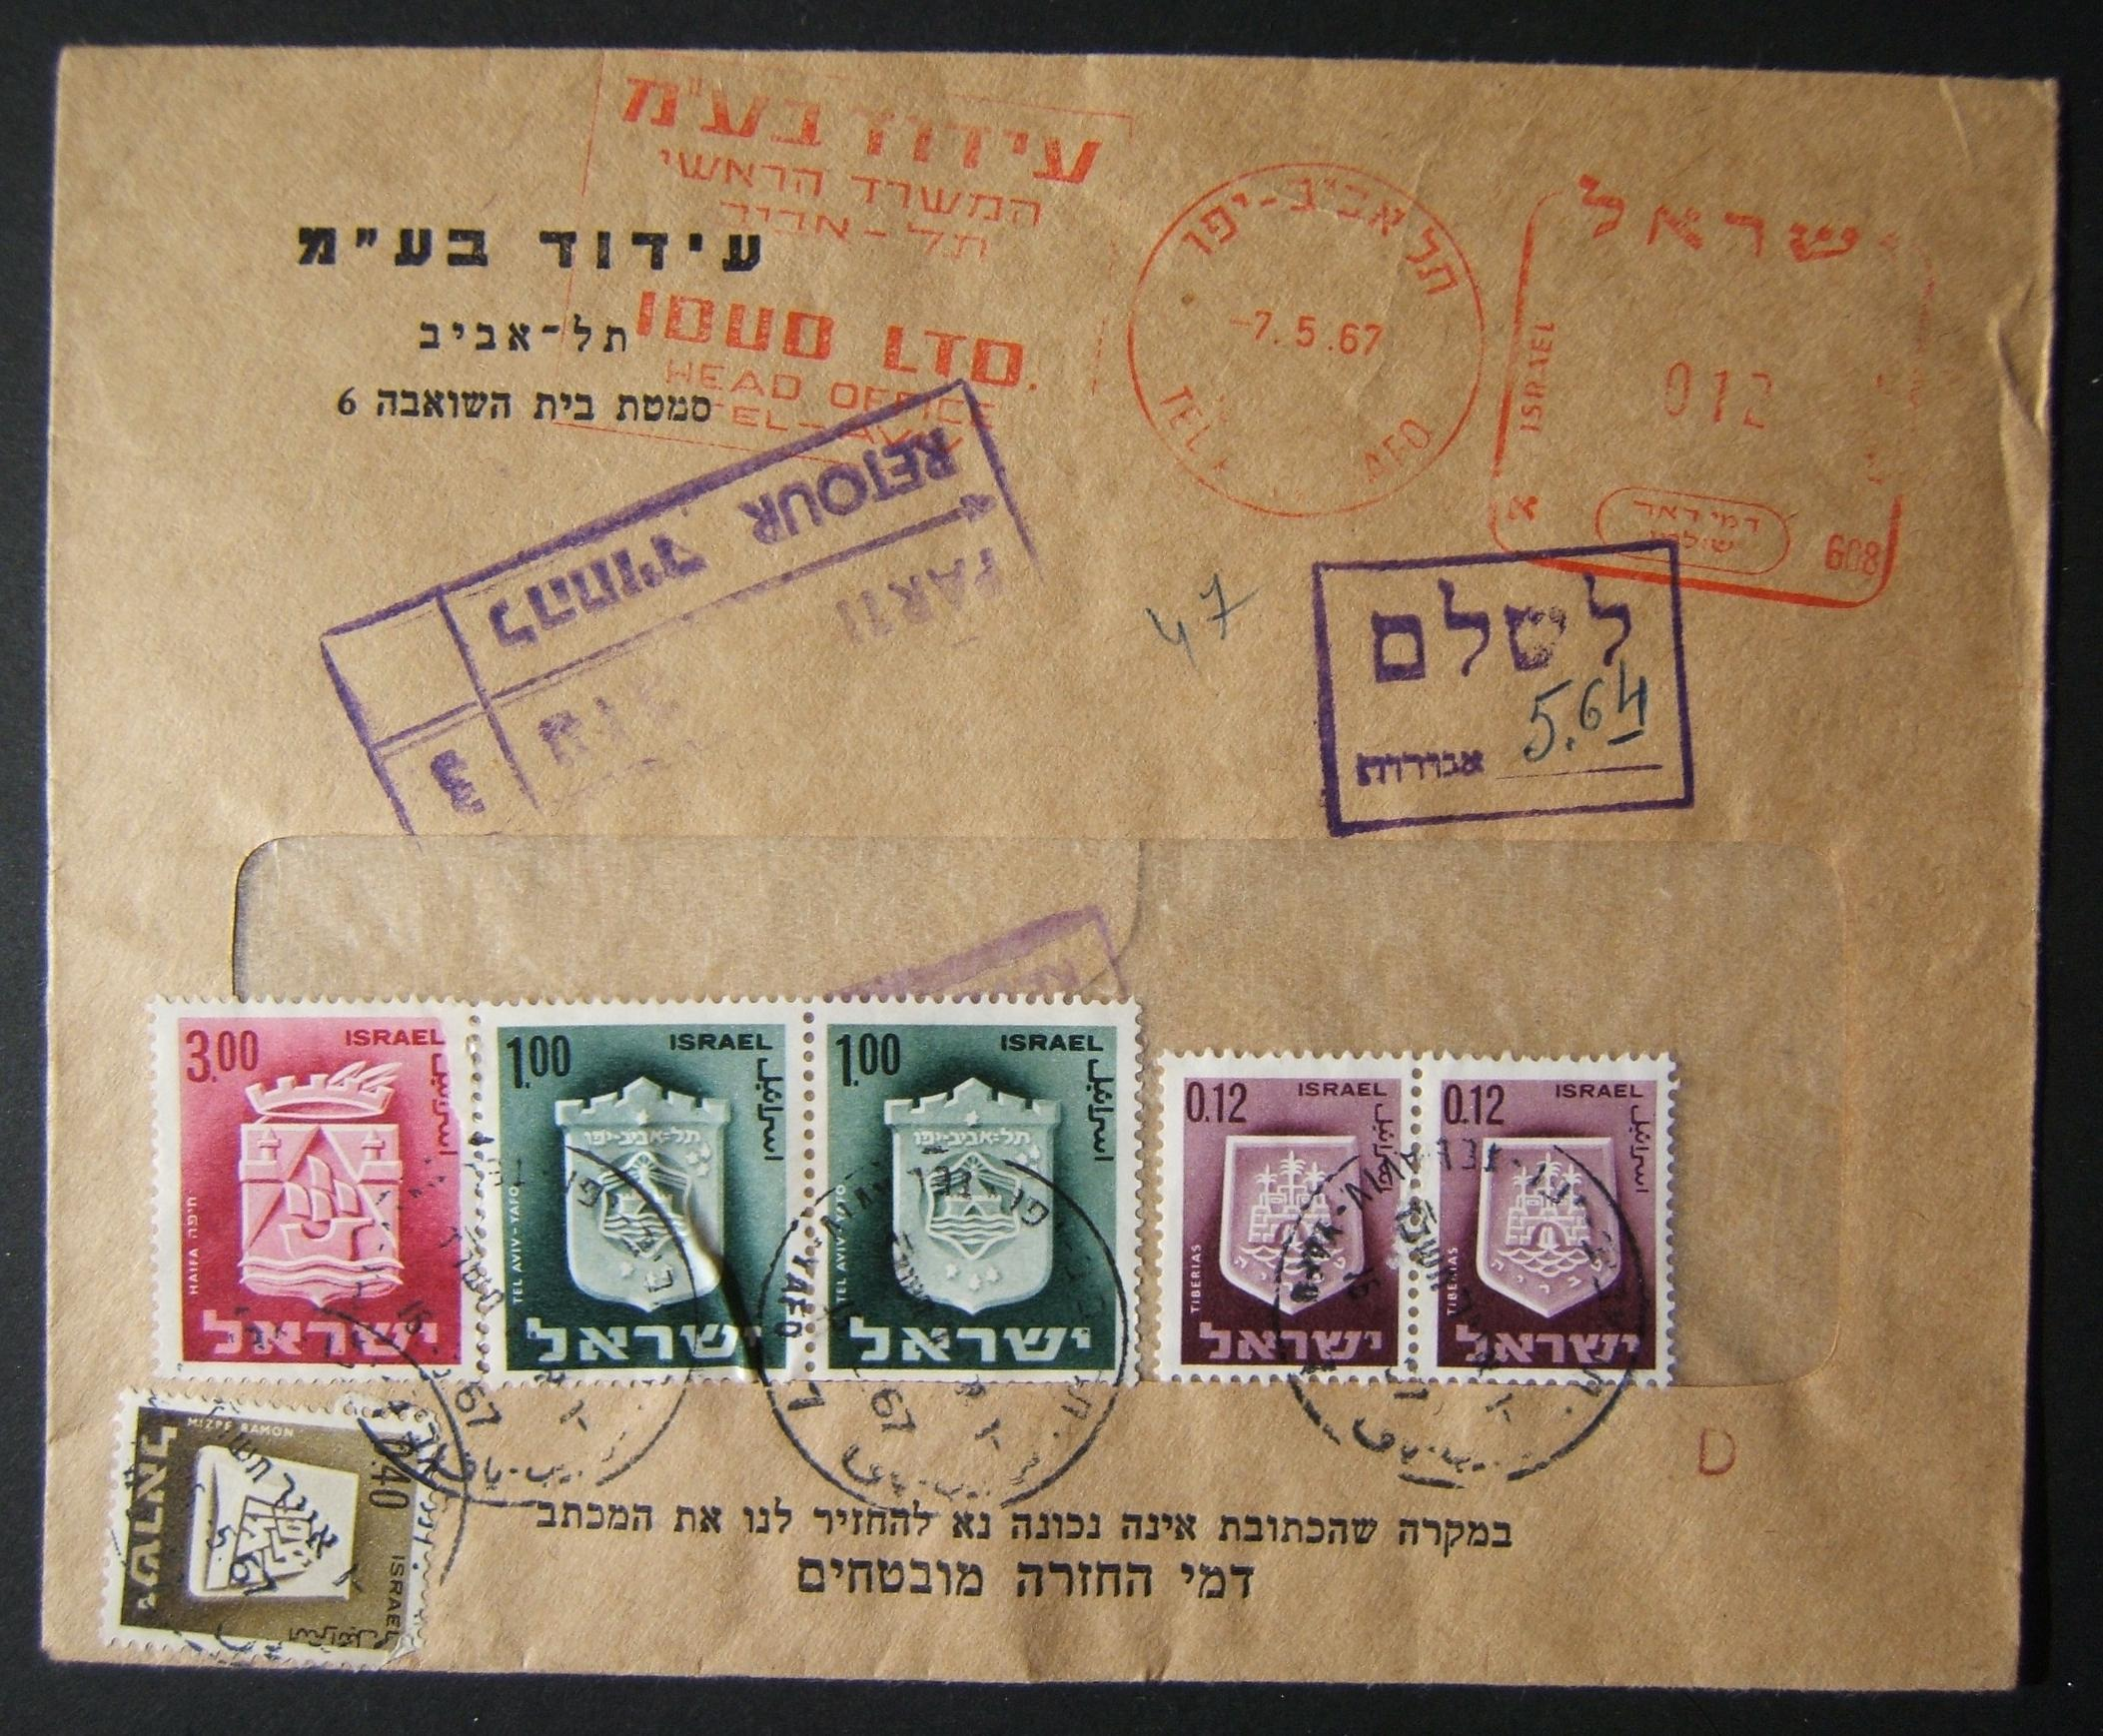 1967 domestic 'top of the pile' taxed franking: 7-5-67 pm comm. cv ex TLV franked by meter at DO-12 period 12 Ag rate, returned to sender as addressee left (cachet & manuscript); a